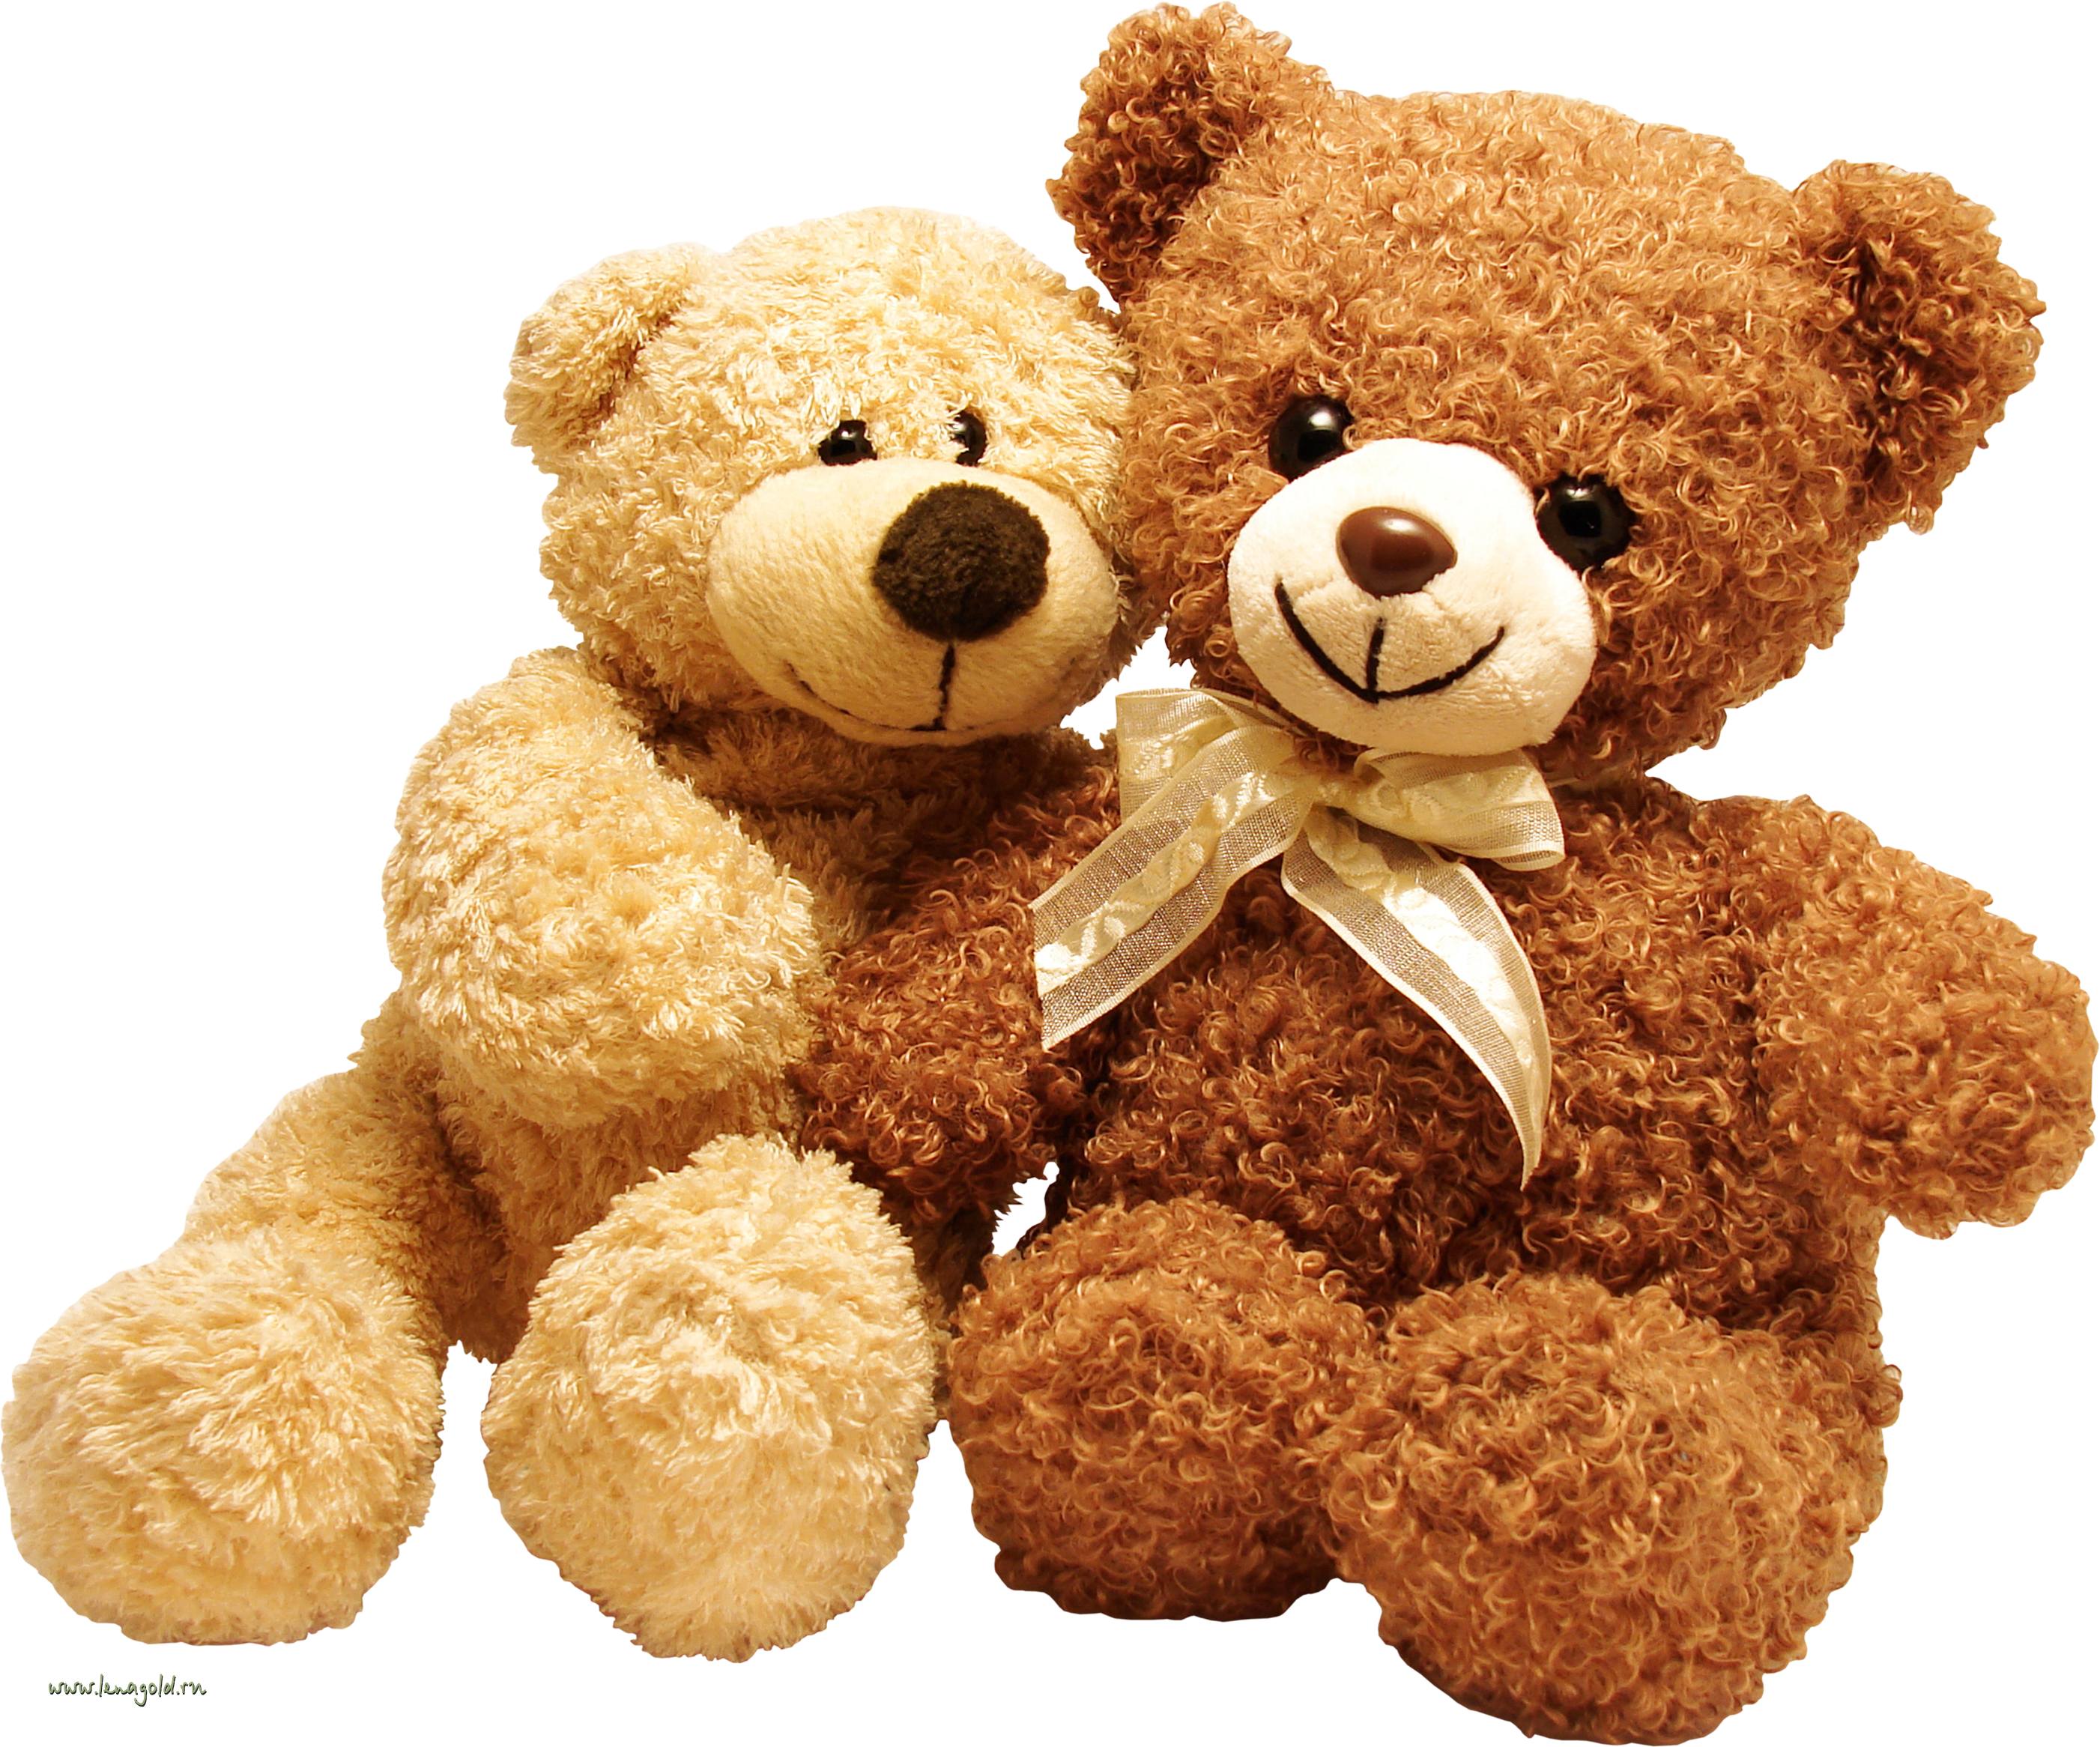 Teddy Bear Free Png Image PNG Image - Teddy Bear PNG HD